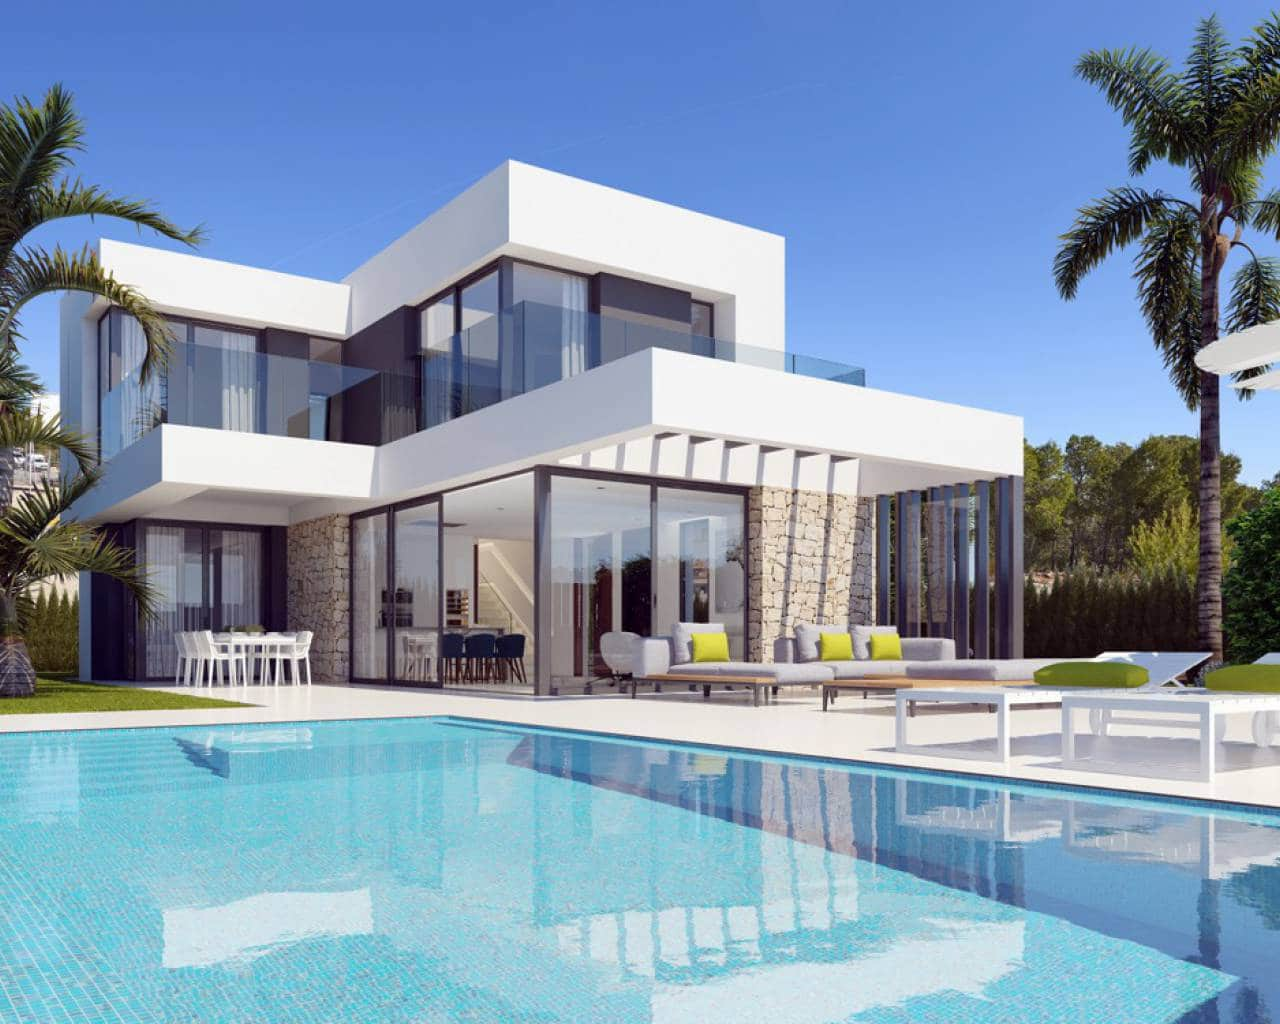 3 bedroom Villa for sale in Finestrat with pool - € 810,000 (Ref: 5716580)